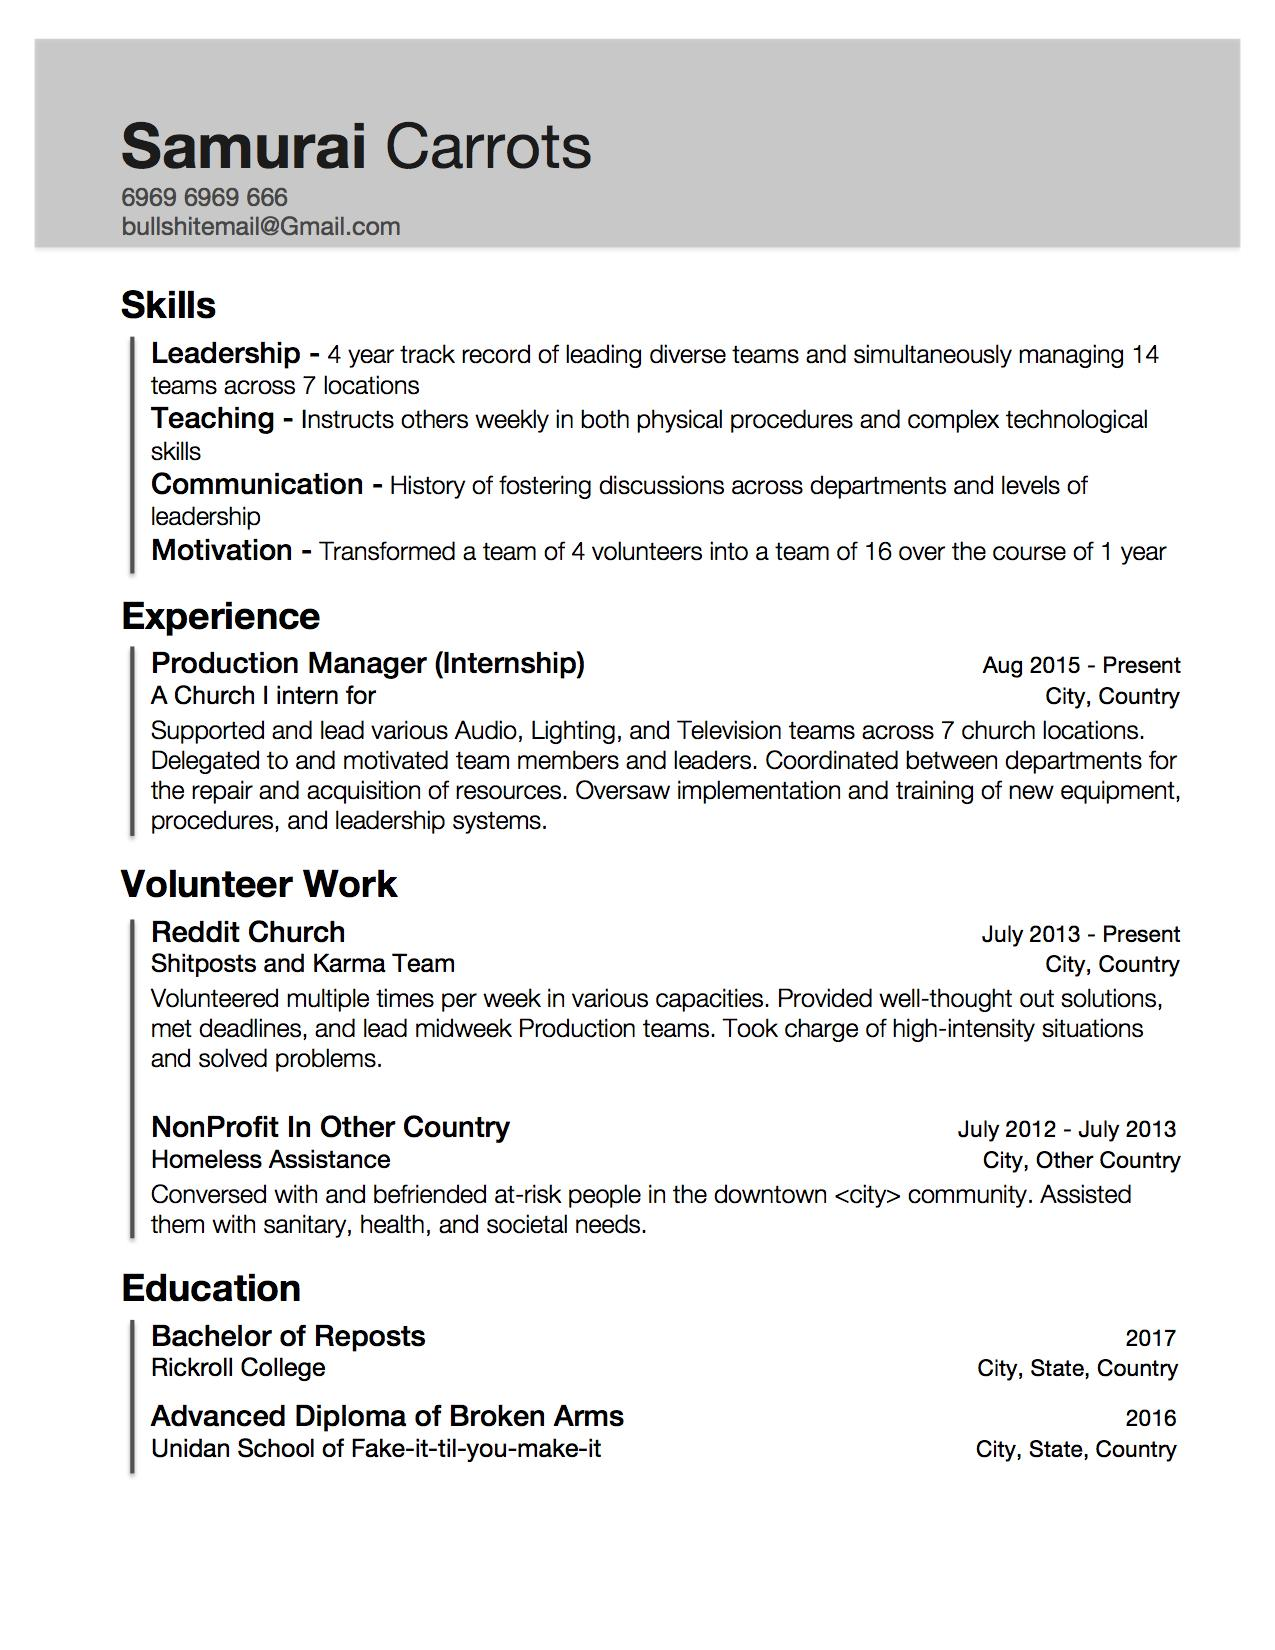 resume with little work experience but skills acquired through internship and Resume Work And Experience Resume